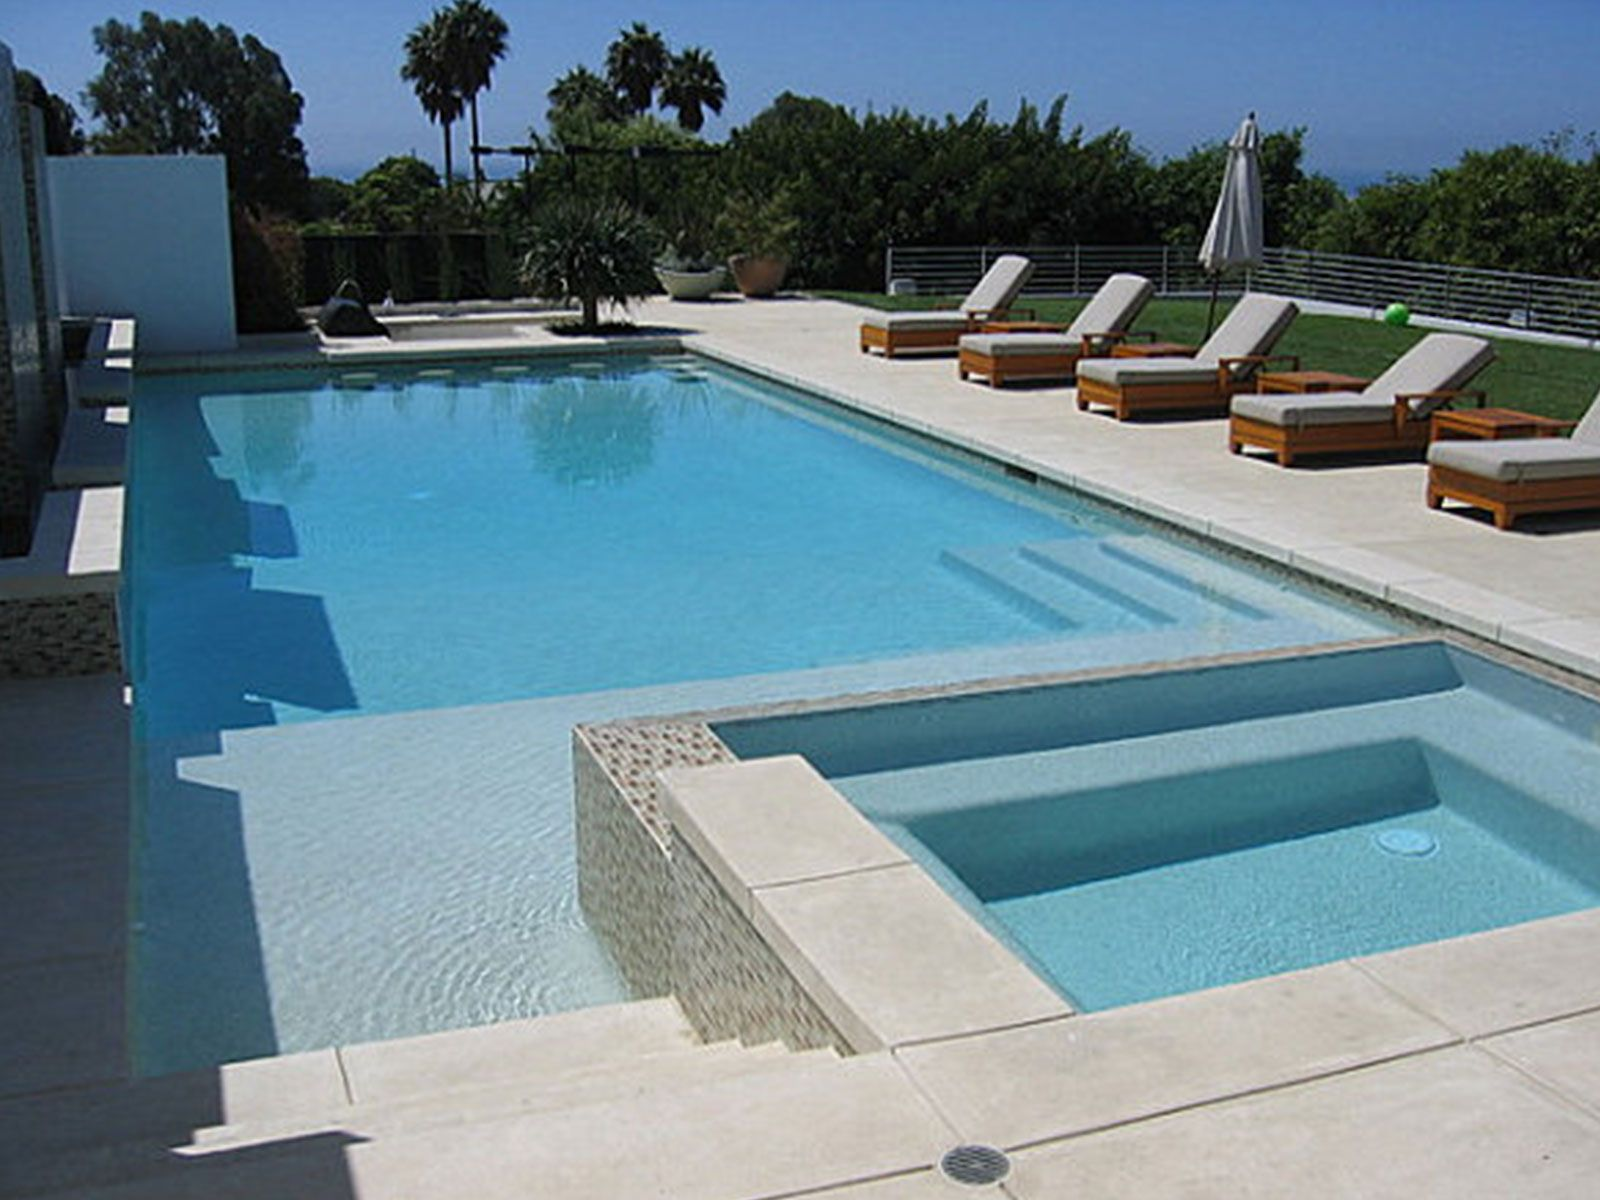 simple swimming pool design image modern creative swimming modern swimming pools and spas - Swimming Pool Designs